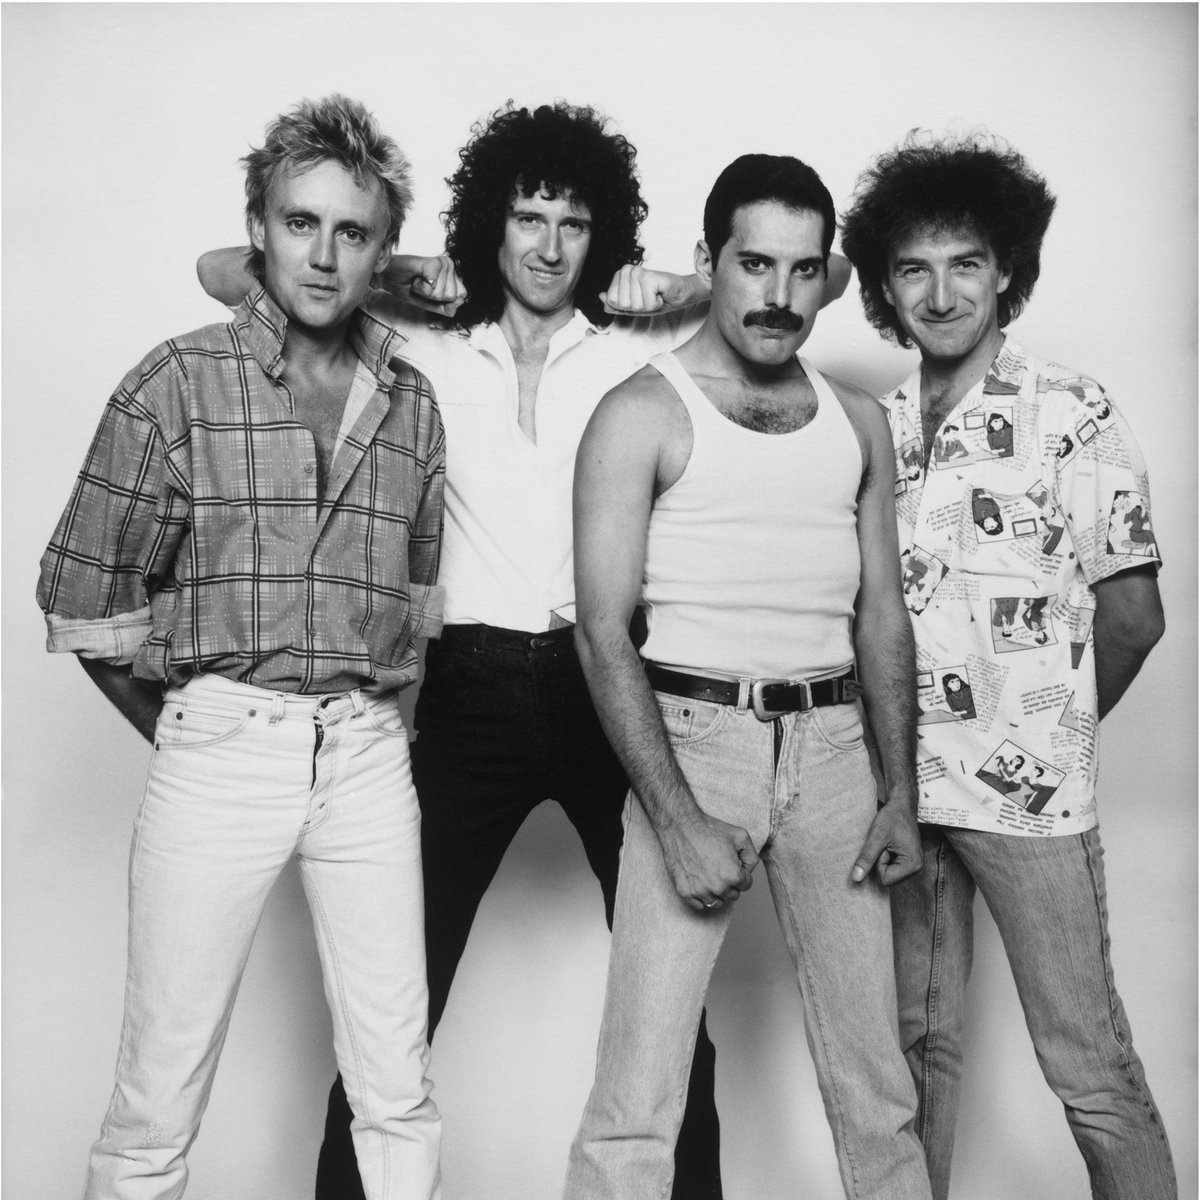 Queen photographed by David Bailey backstage at Live Aid, Wembley Stadium, London